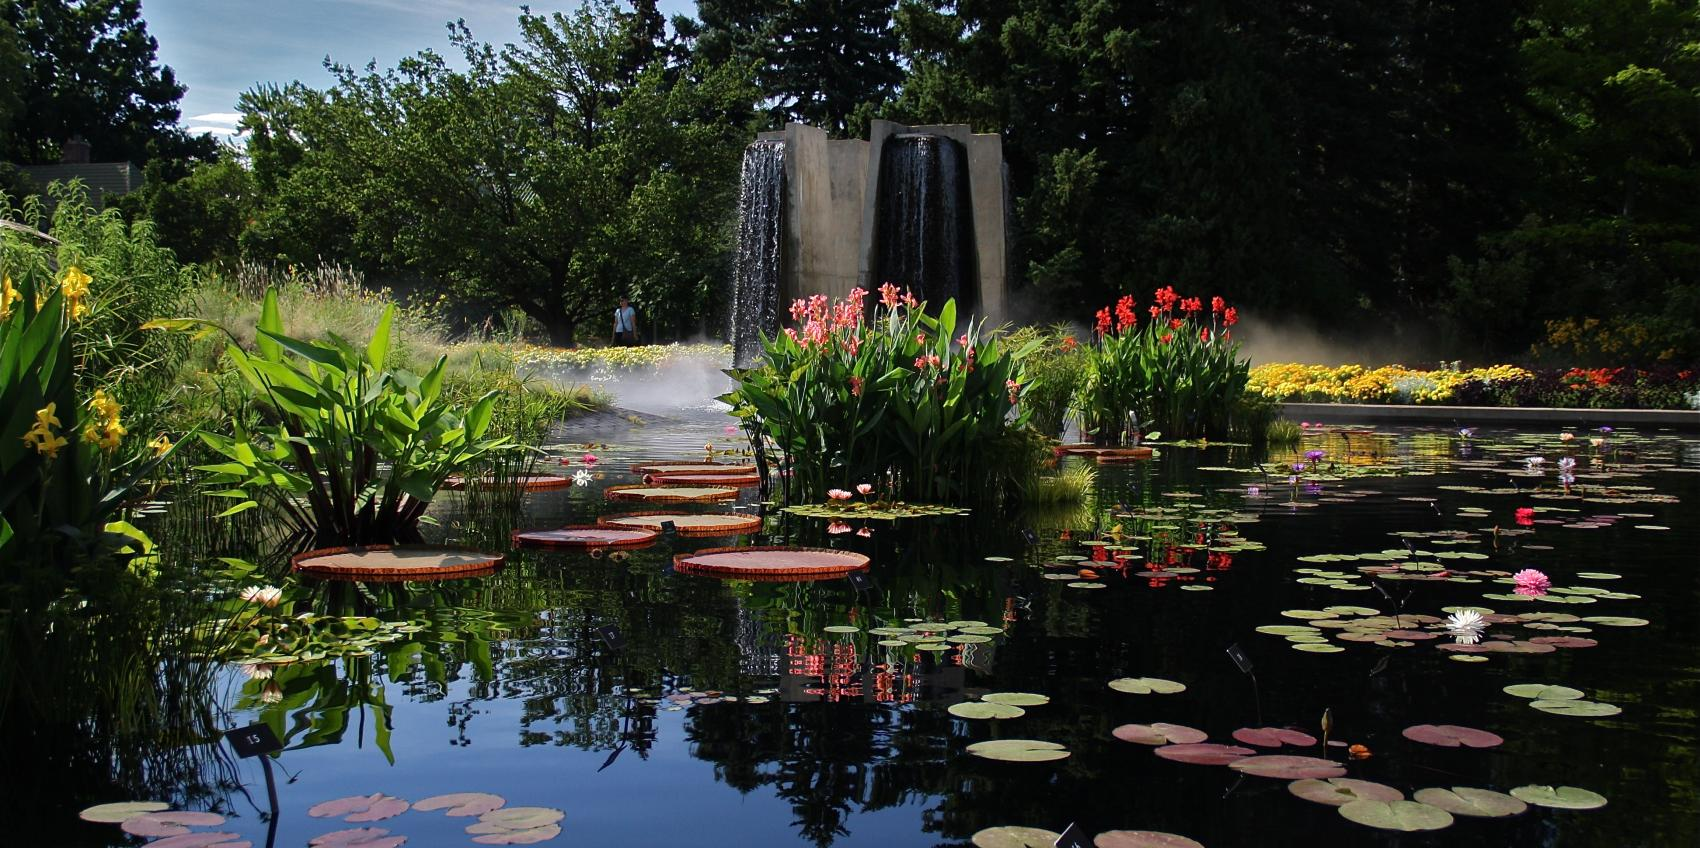 Ordinaire Green Inside And Out, Denver Botanic Gardens Began In 1951 And Is A Pioneer  In Water Conservation. Accredited By The American Alliance Of Museums, ...